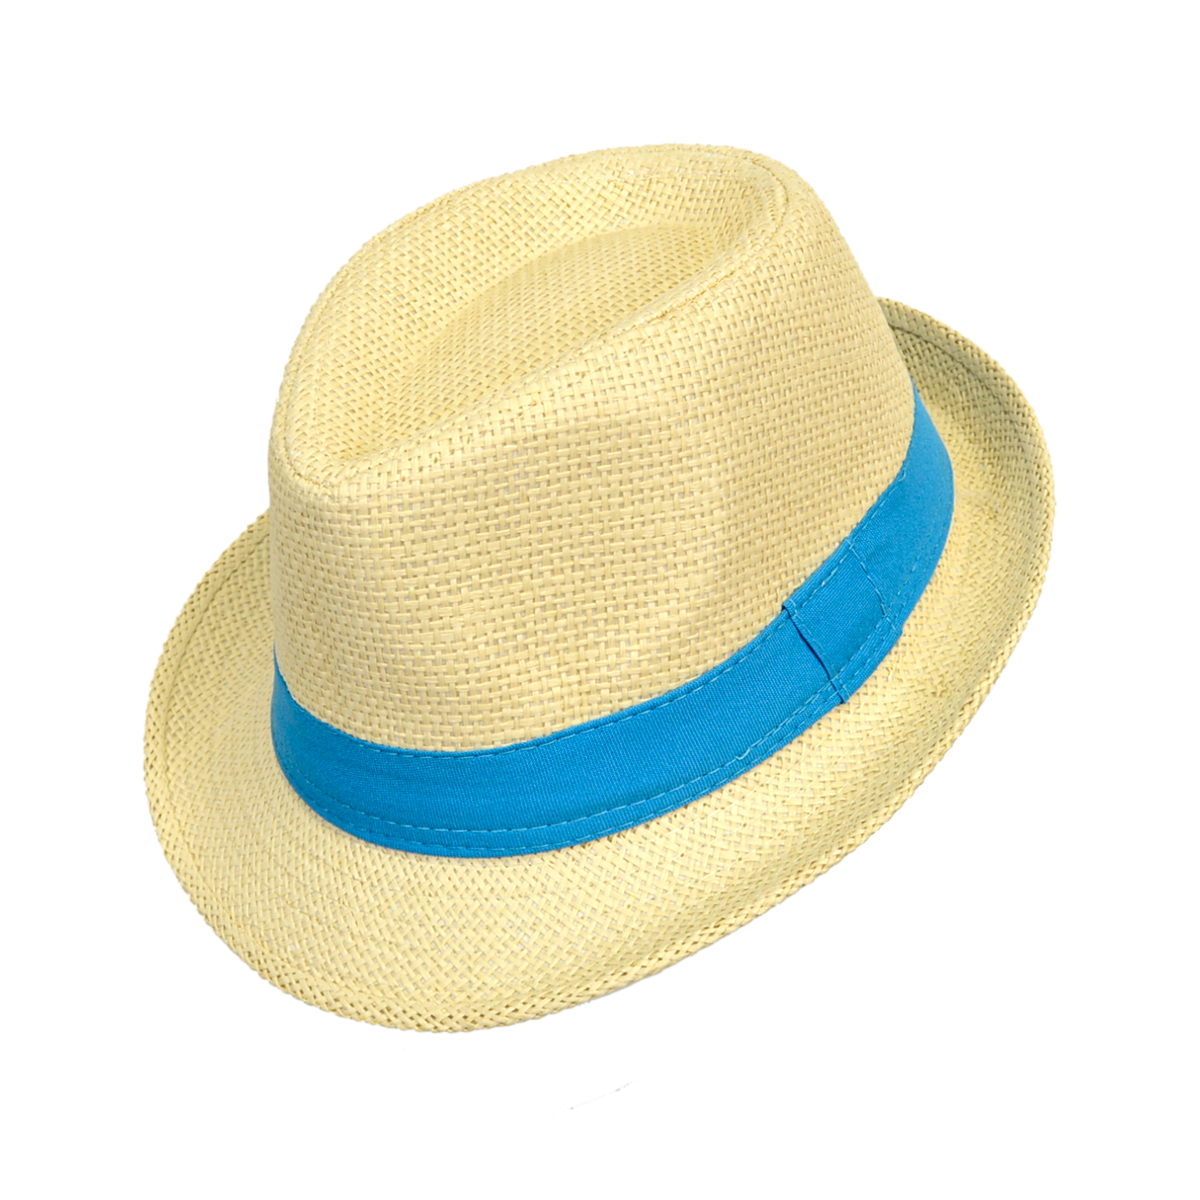 61ad085e7ea 6pc Boy s Spring Summer Light Tan Straw Fedora Hats with Blue Band